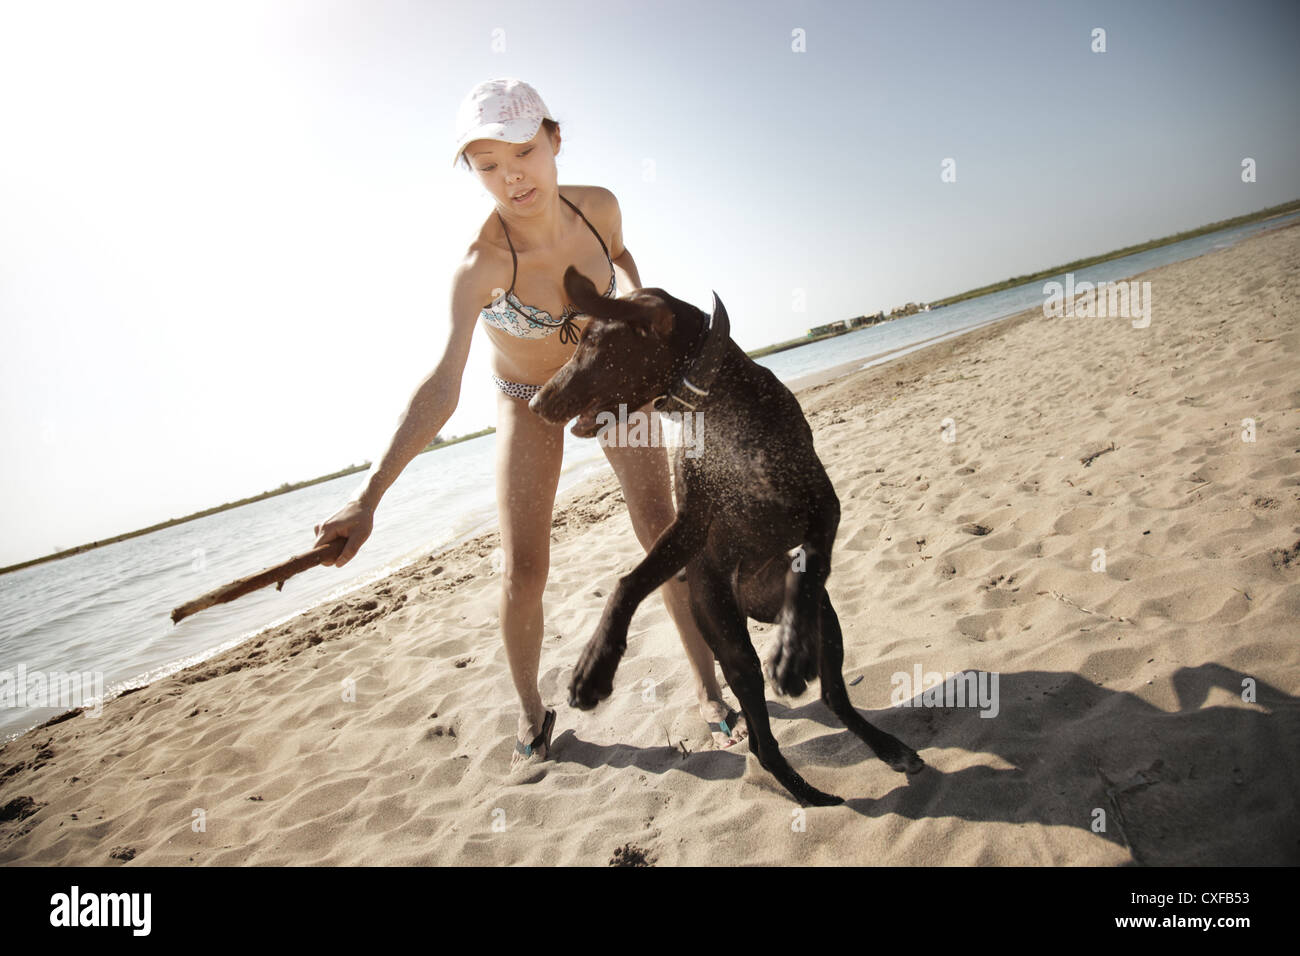 Woman in vacation playing with her dog at the summer beach. Artistic colors added - Stock Image